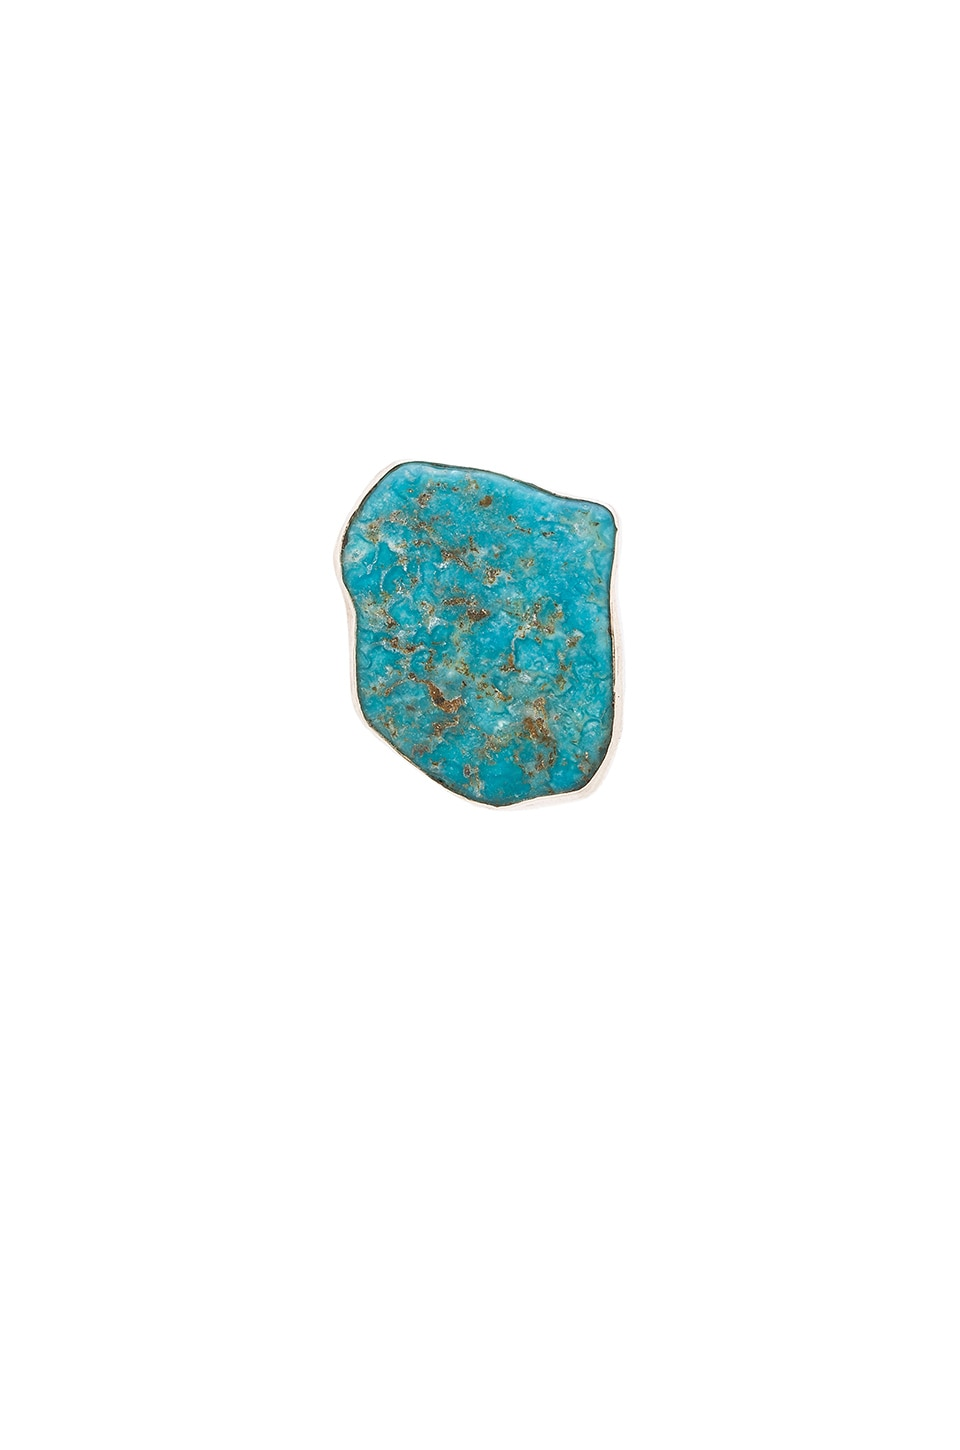 Natalie B Jewelry Odyssey Ring in Silver Turquoise